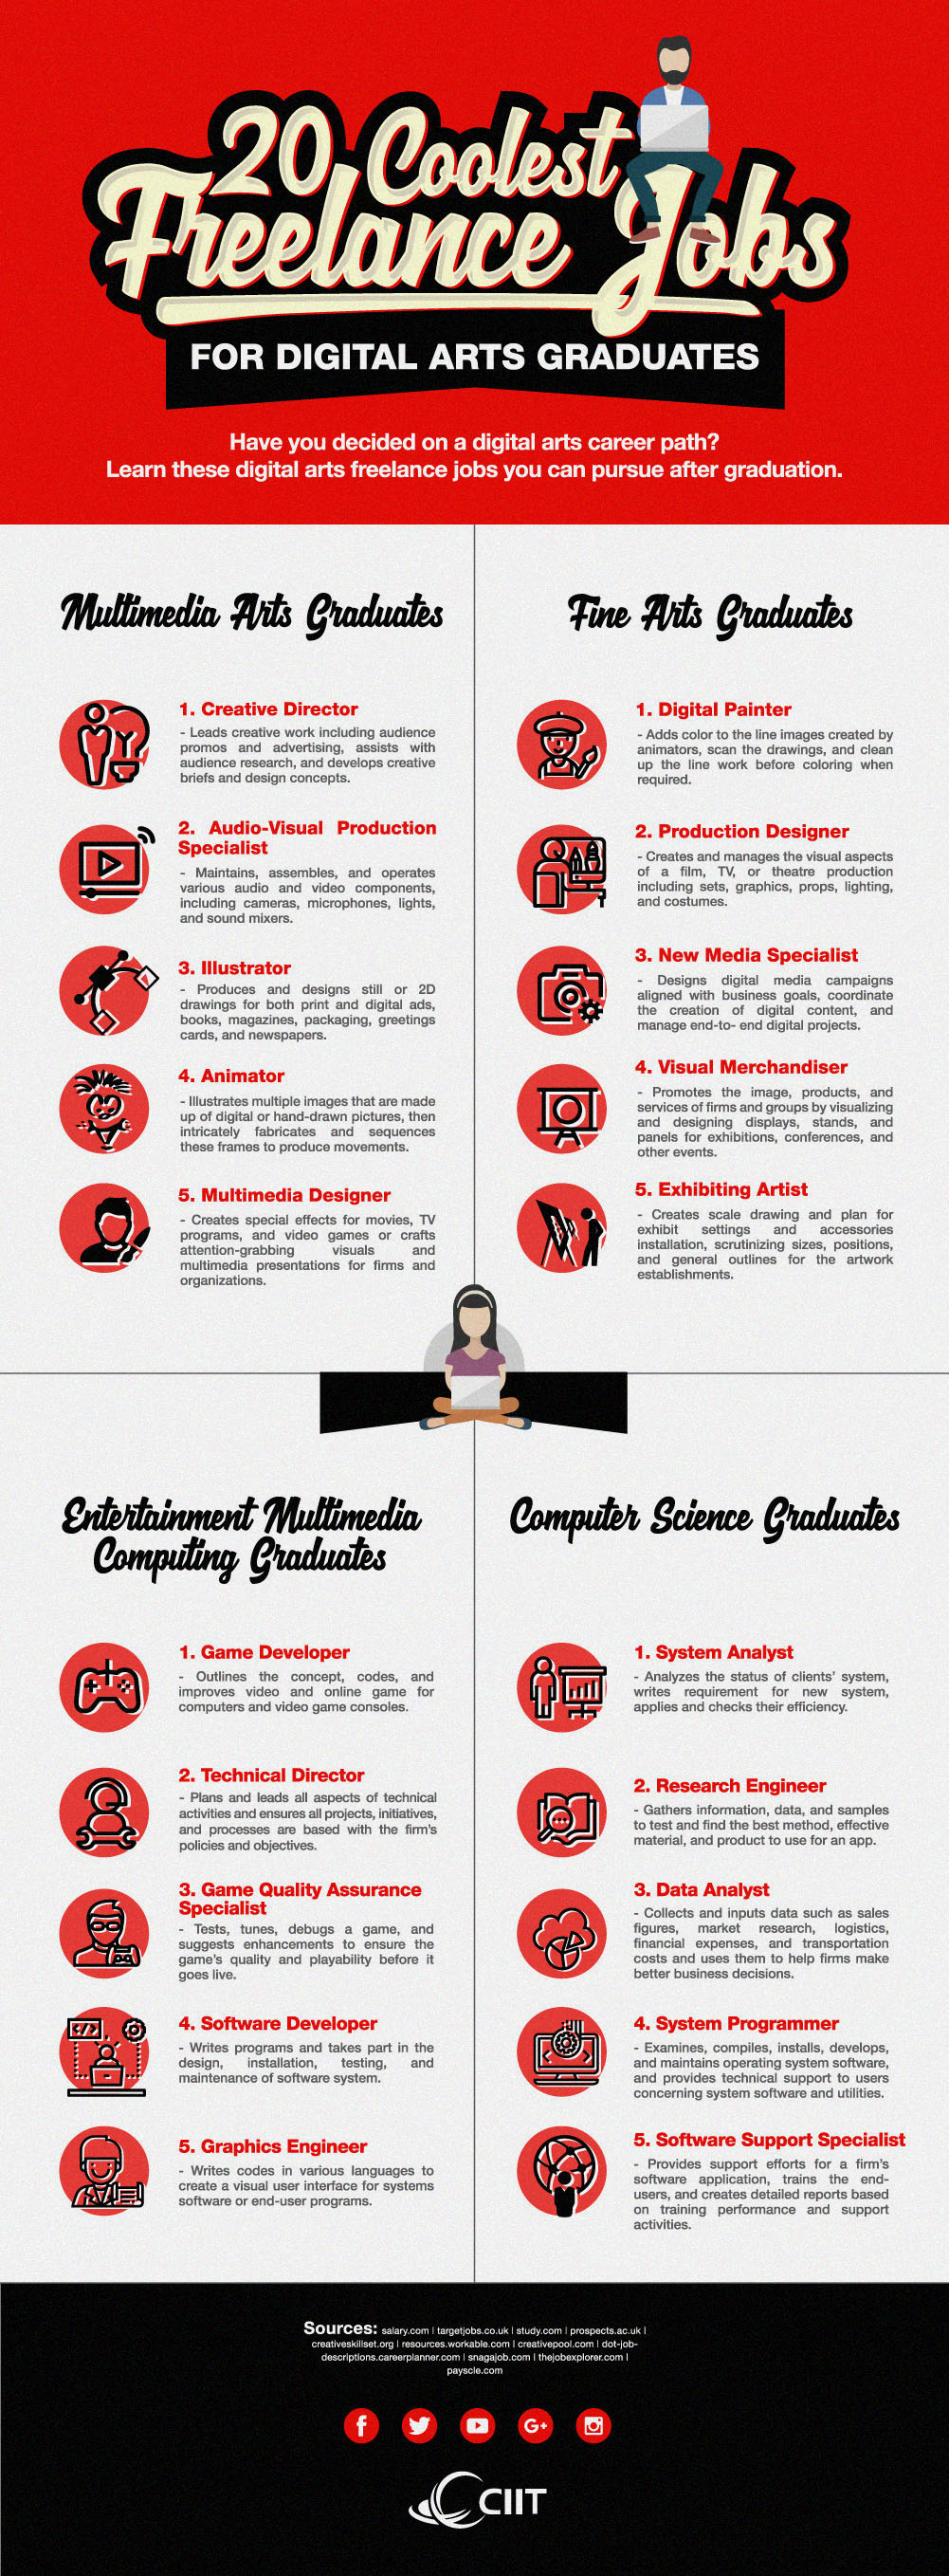 20 Coolest Freelance Jobs for Digital Arts Graduates - CIIT Infographic